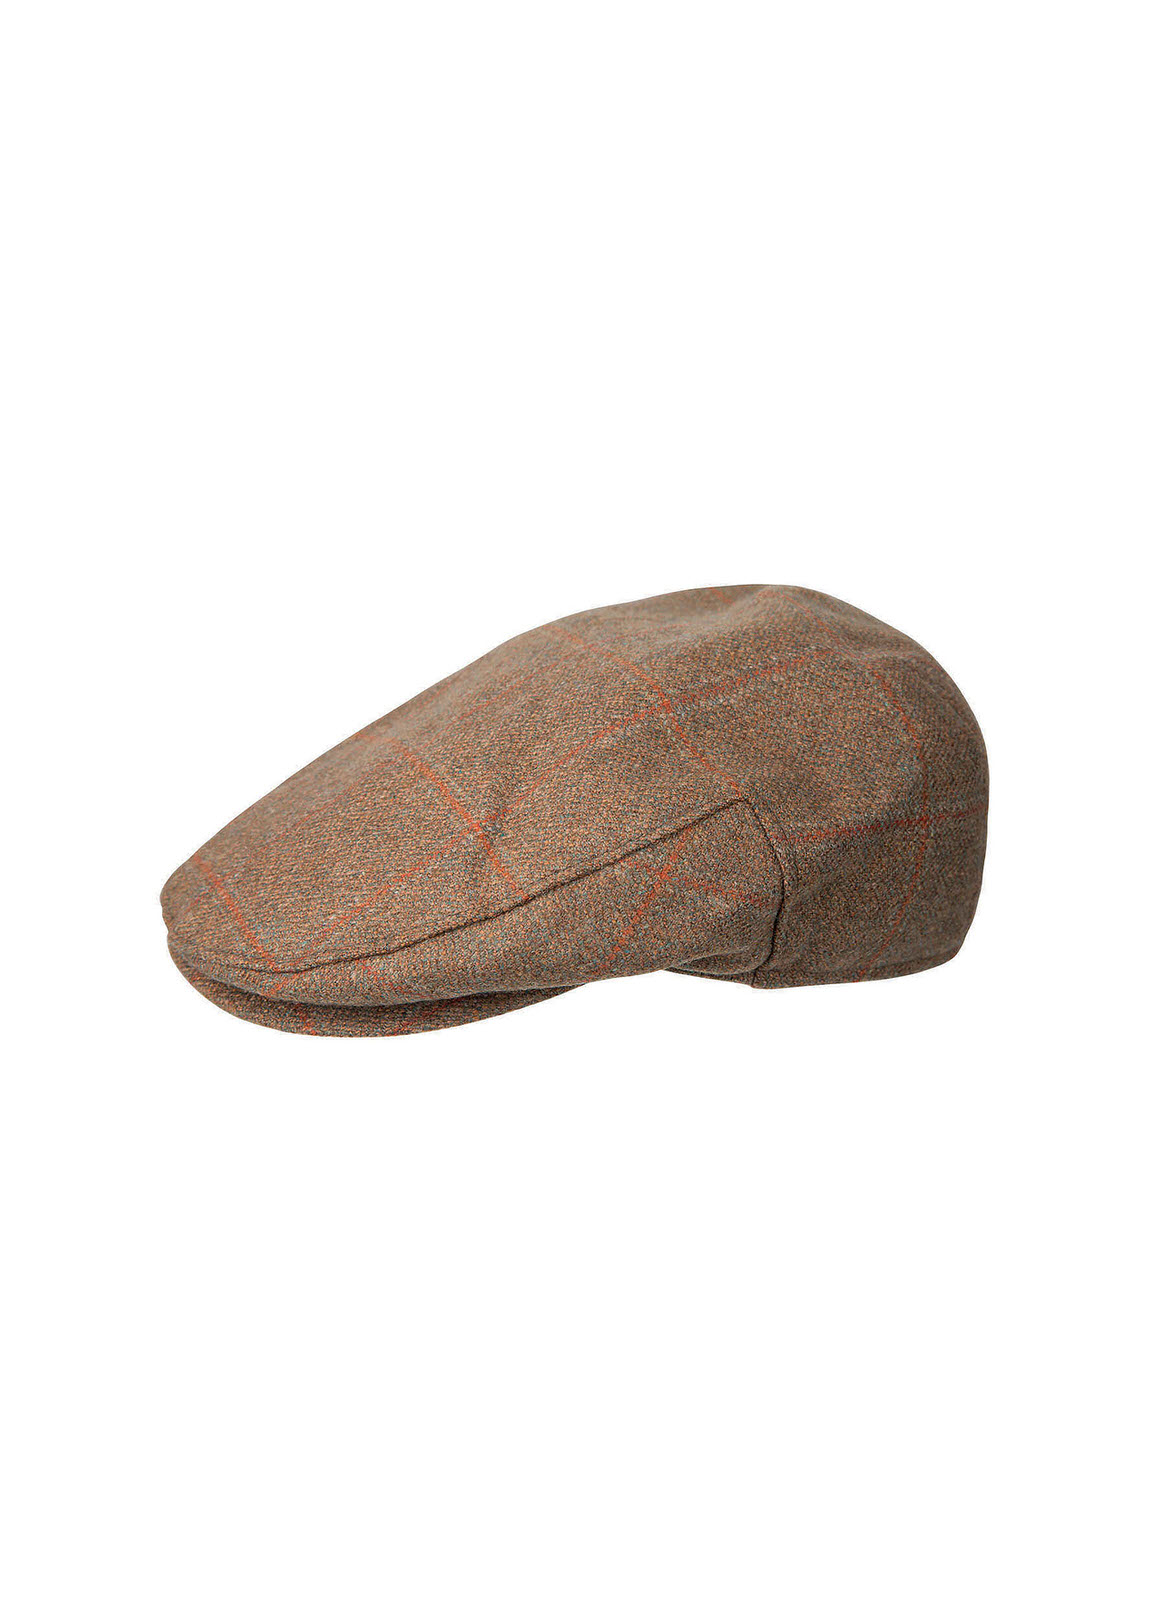 Holly_Tweed_Oak_Image_1